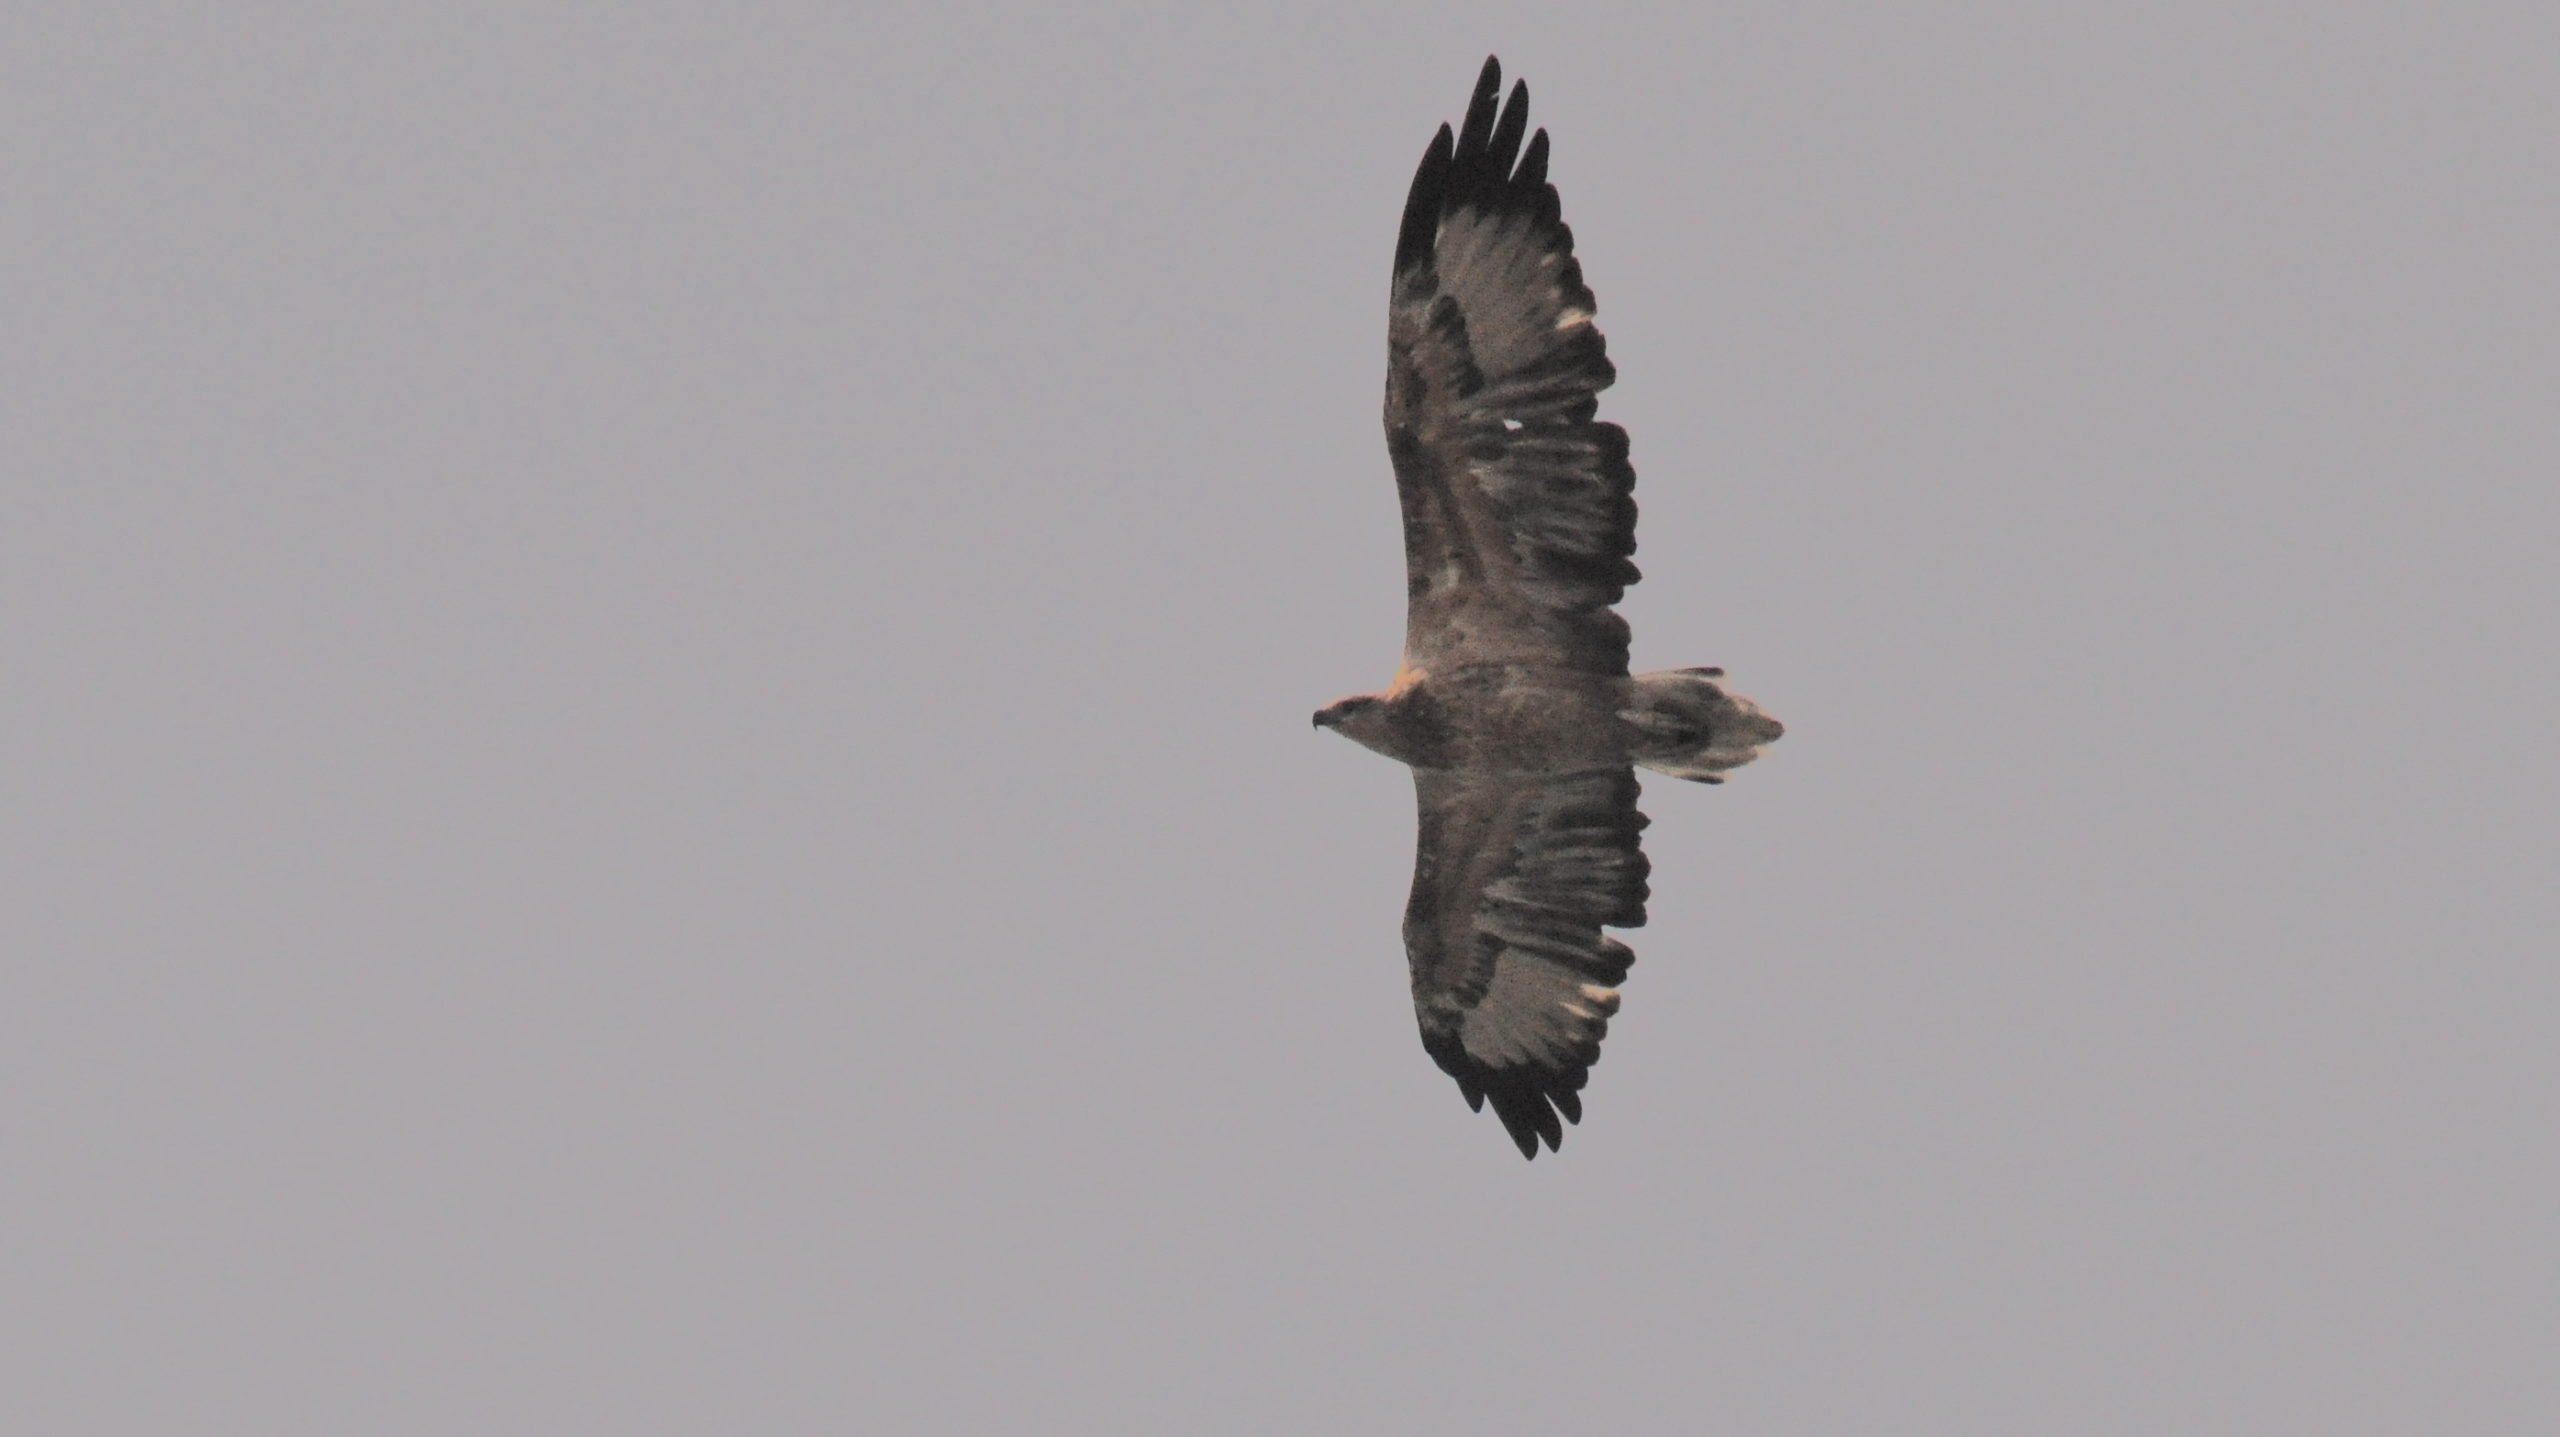 White Tail Sea Eagle